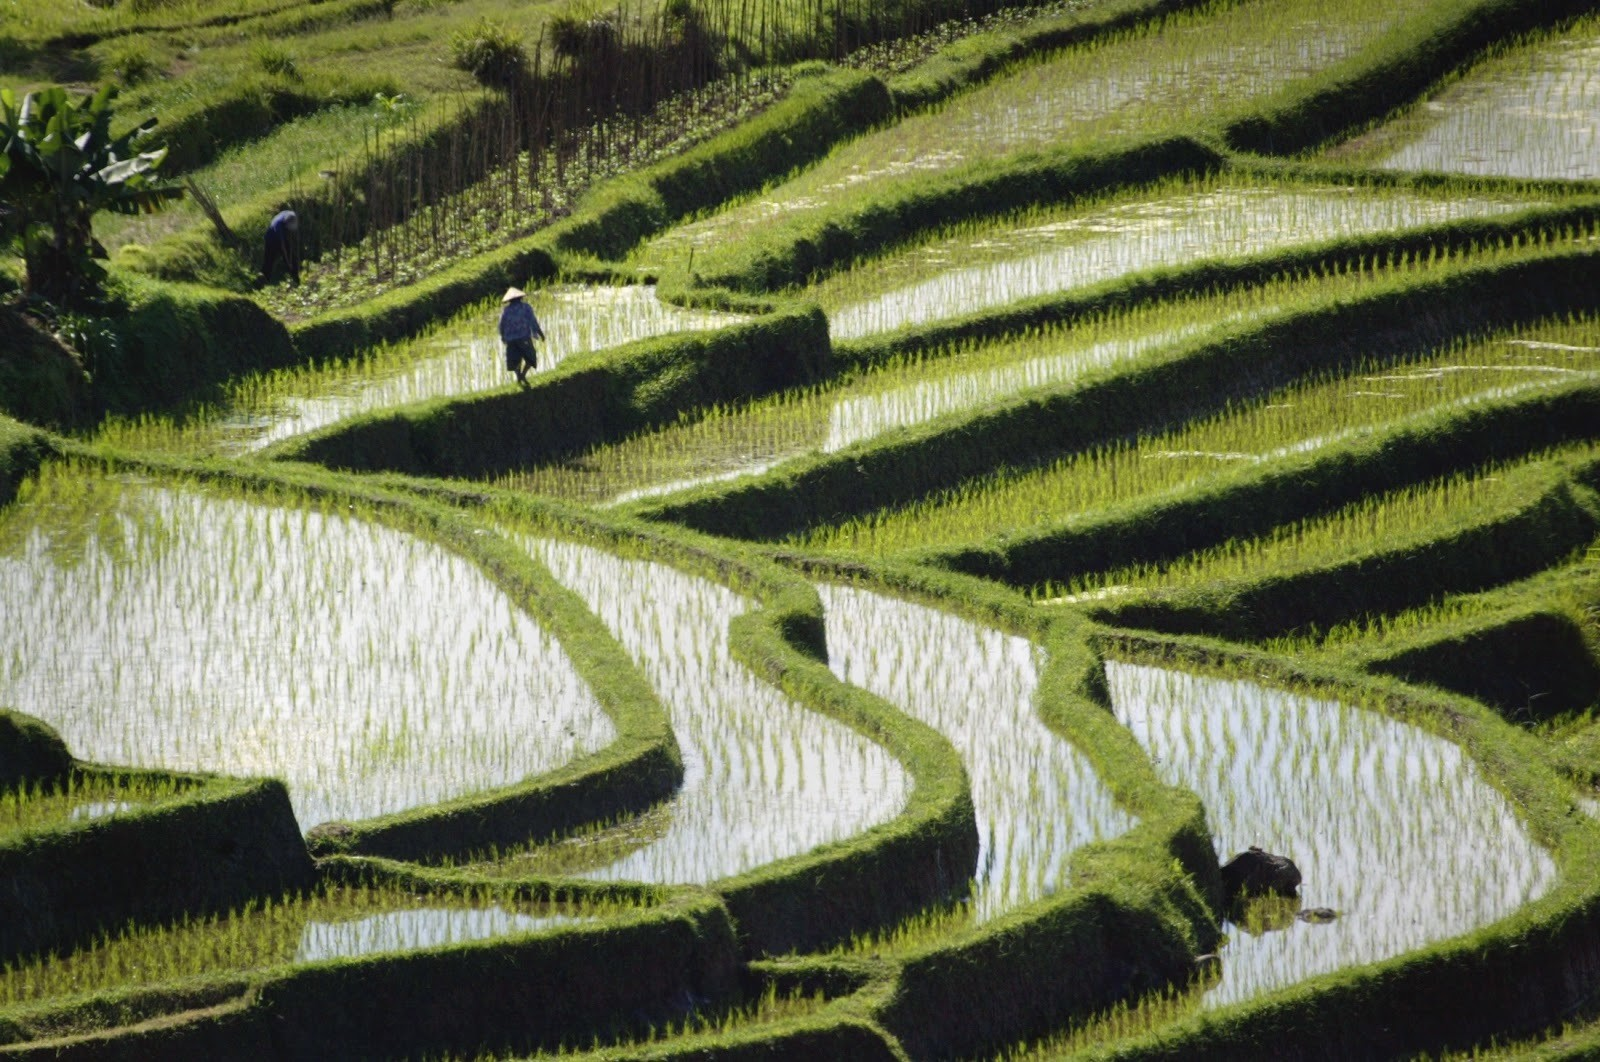 Rice is planted in graceful terraced paddies near Jatiluwih in central BaliAugust 11, 2003. Rice plays an important role in Balinese life, eaten atalmost every meal and prepared as an offering to the gods in temples acrossthe country.            PP03090006       REUTERS/Bob StrongRCS - RP4DRIFRZMAD